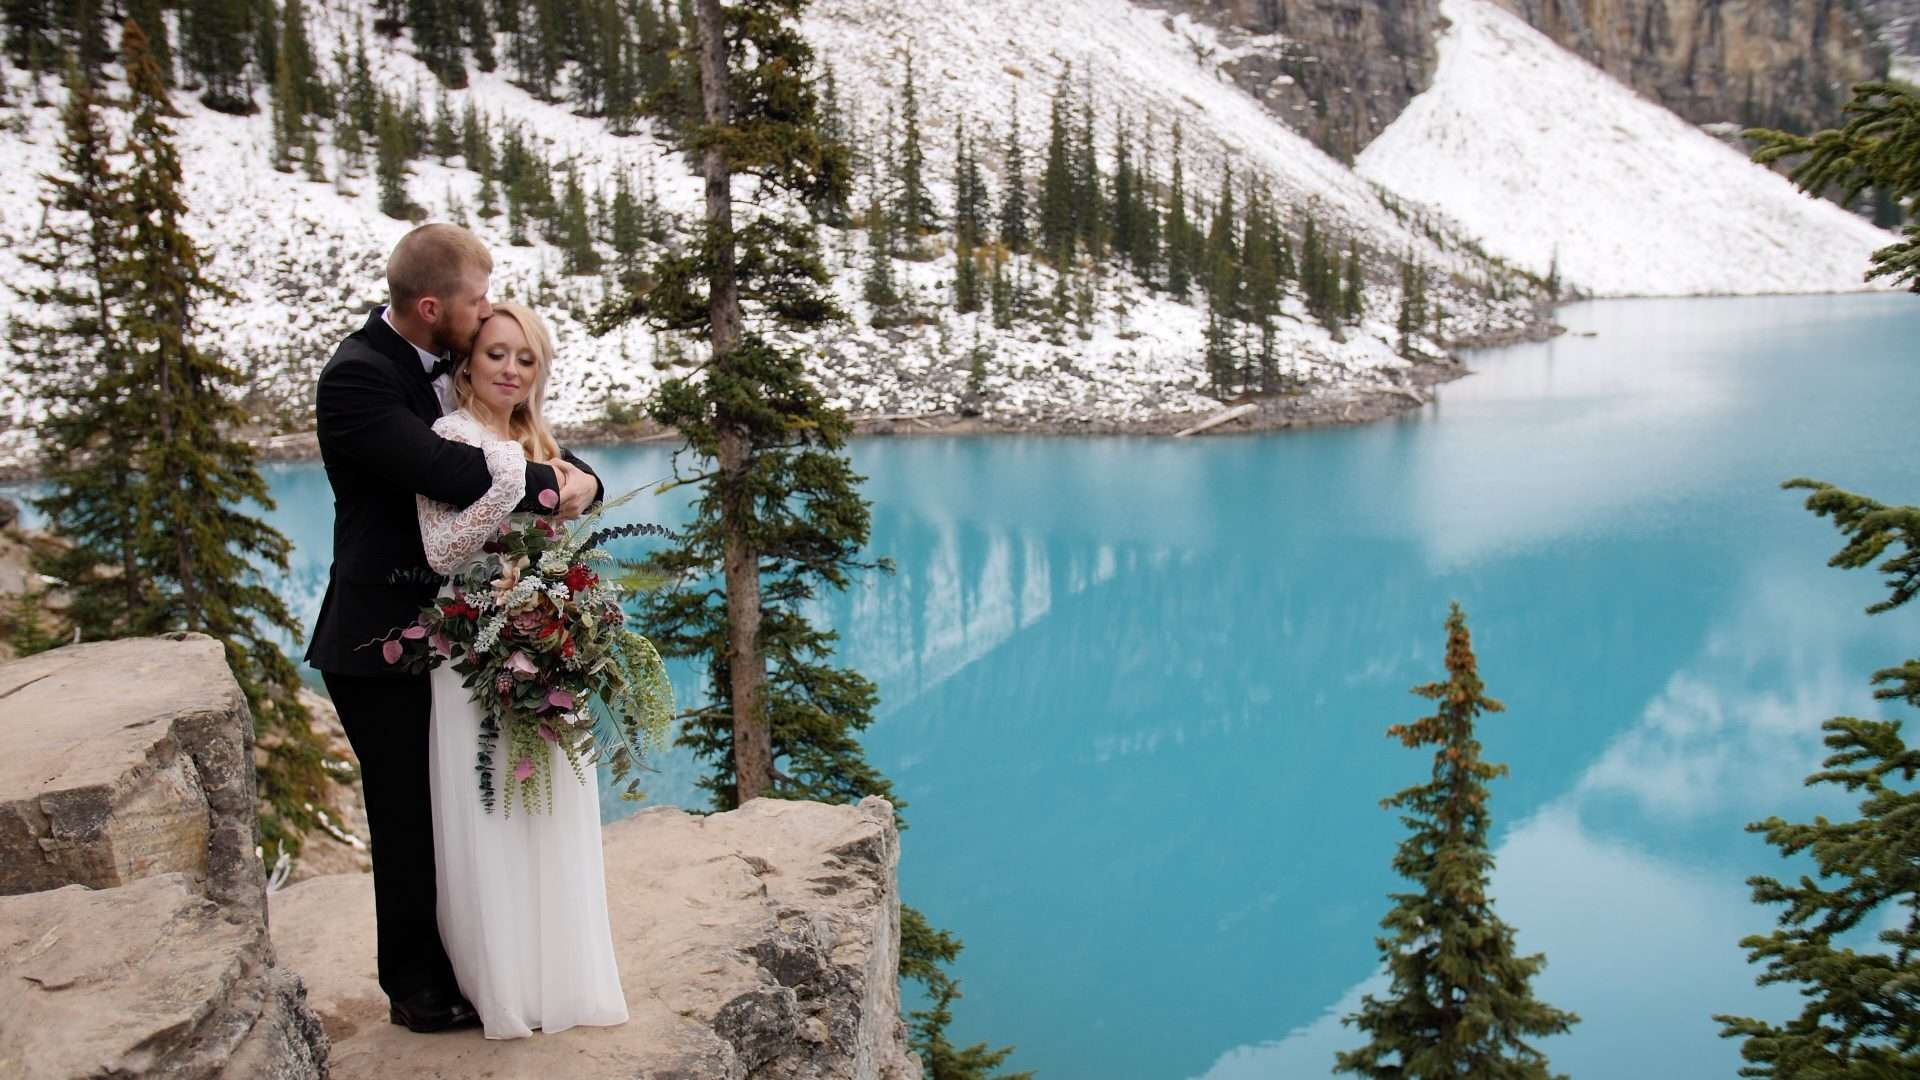 Banff videographer Dream Day Films at Moraine Lake